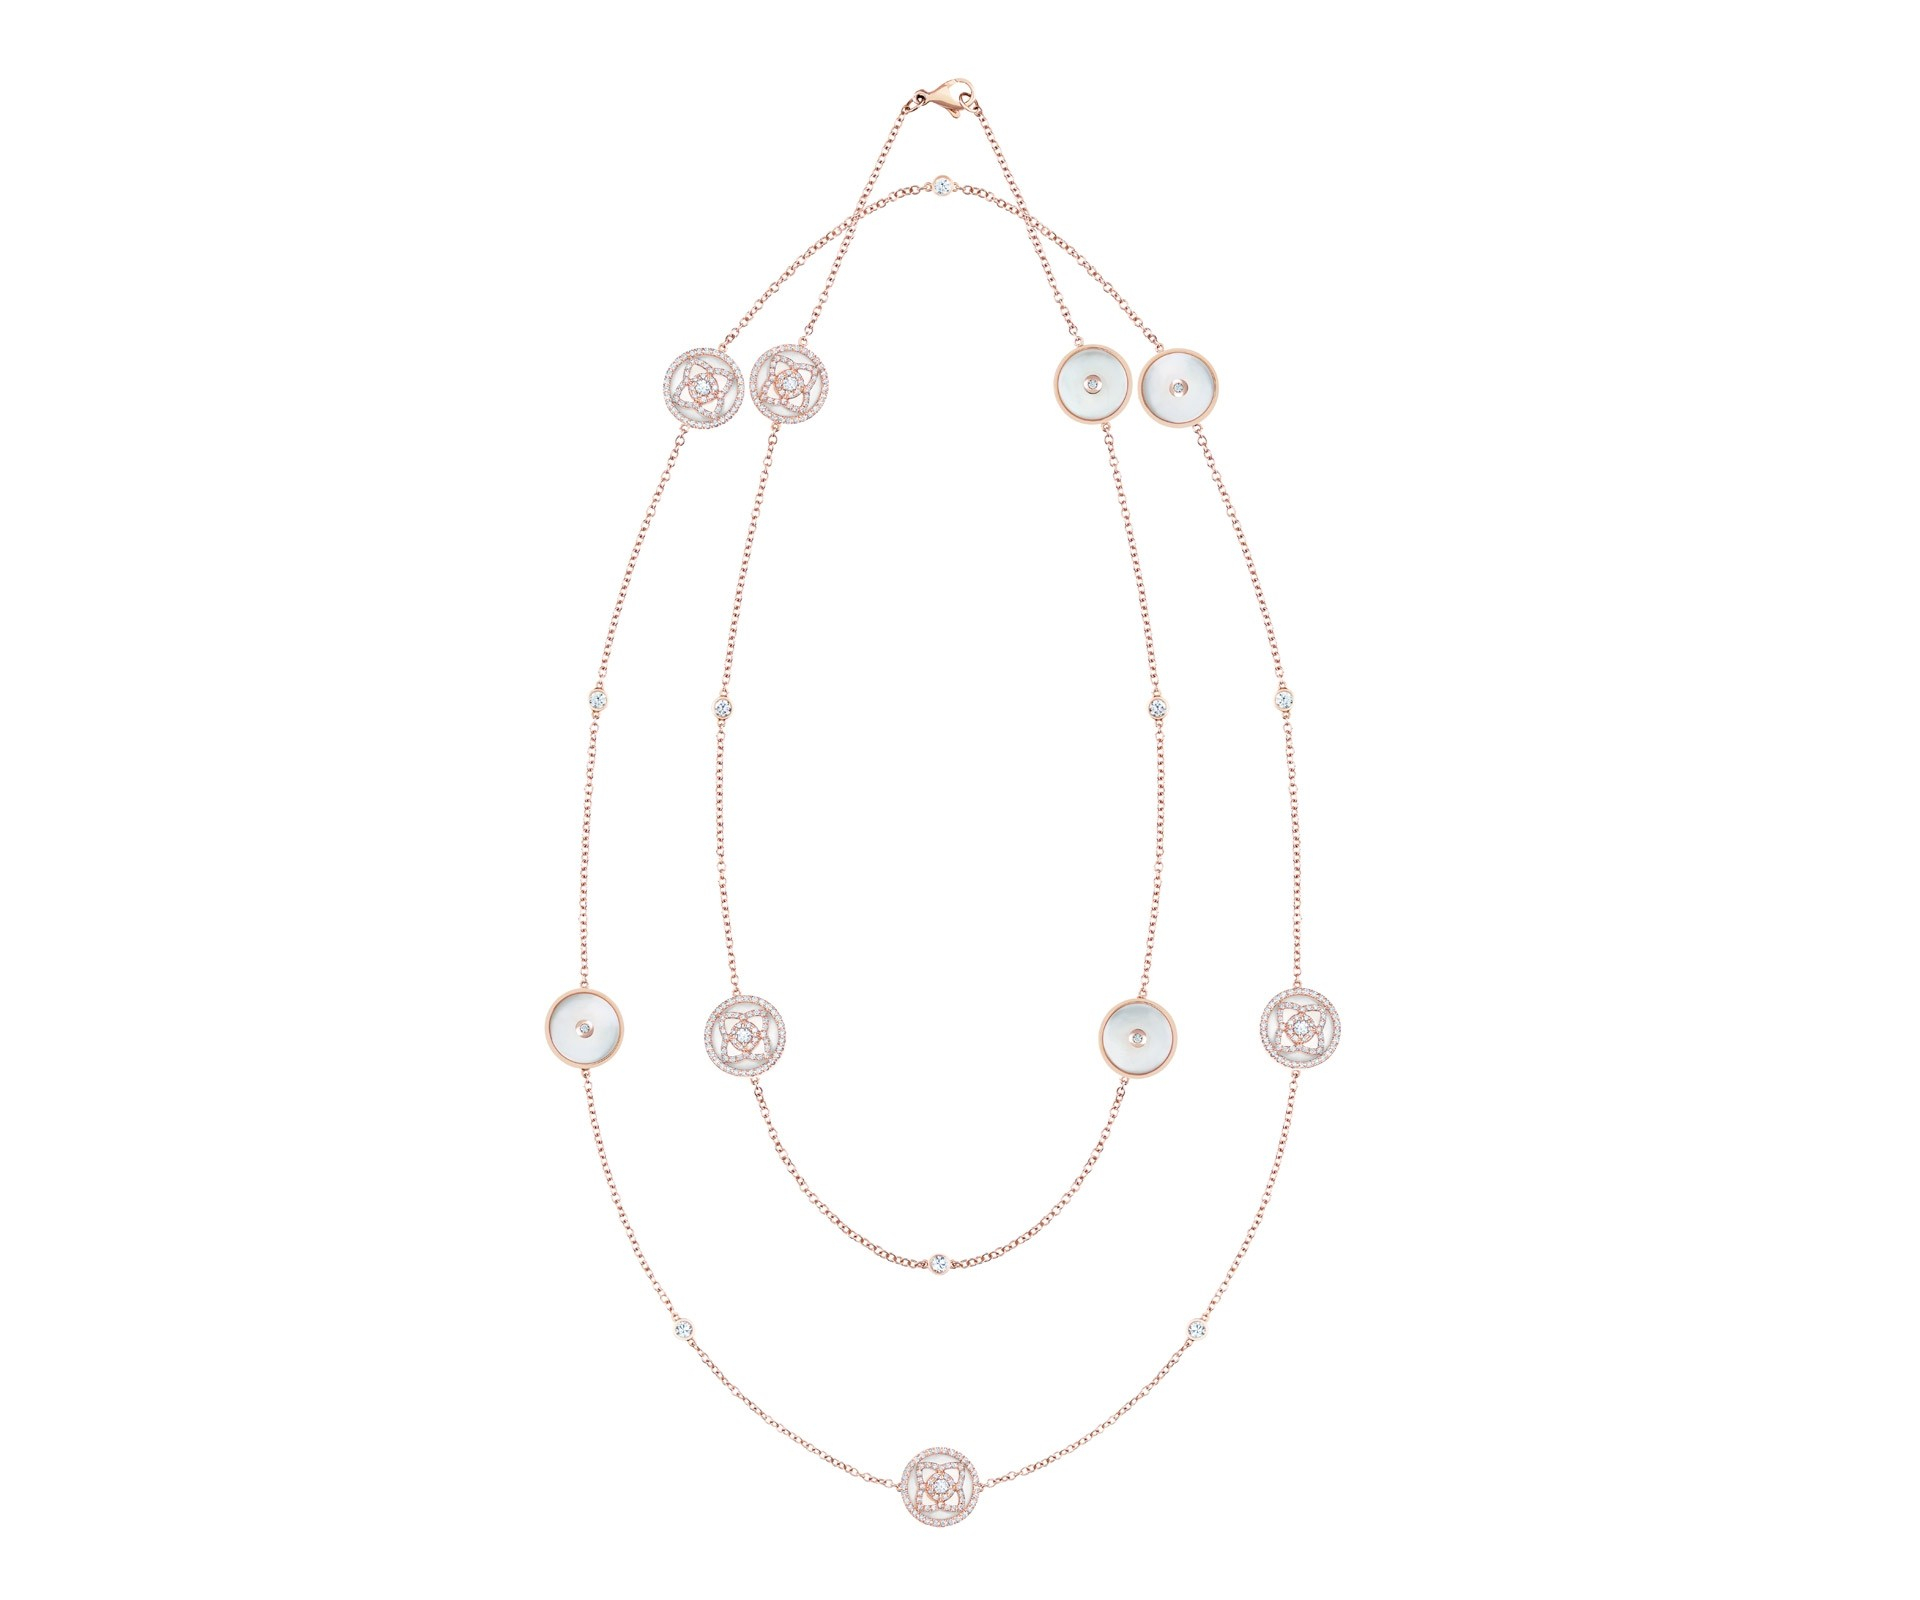 Enchanted Lotus Rose Gold & White Mother Of Pearl Sautoir Necklace In Most Up To Date Diamond Sautoir Necklaces In Yellow Gold (View 10 of 25)